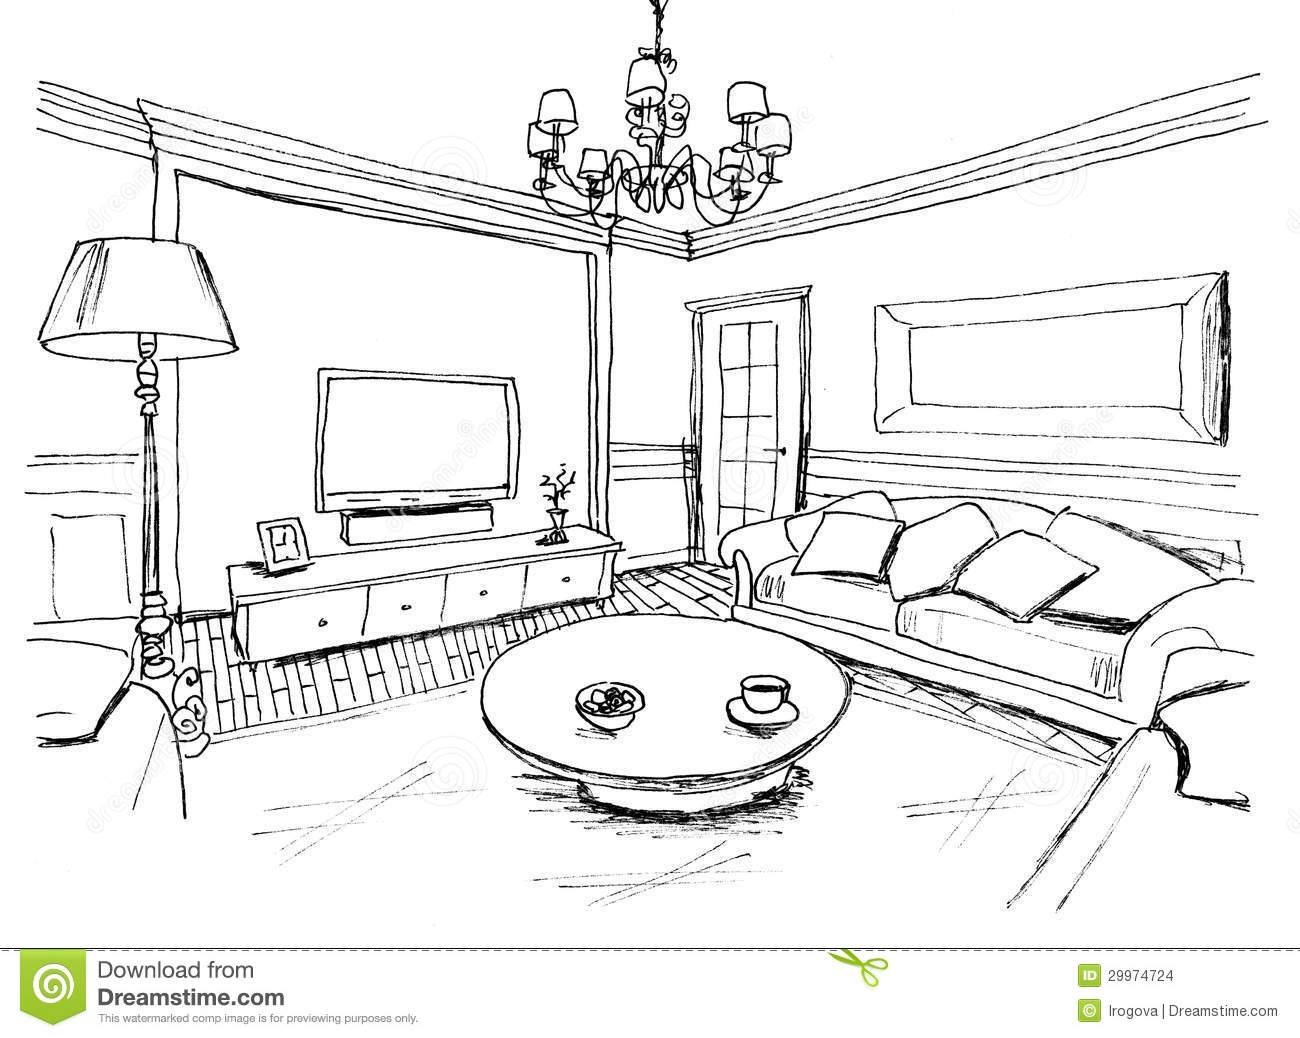 Living room clipart black and white - Graphical Sketch Of An Interior Living Room By Irogova Via Dreamstime The Book Pinterest Best Sketches Ideas